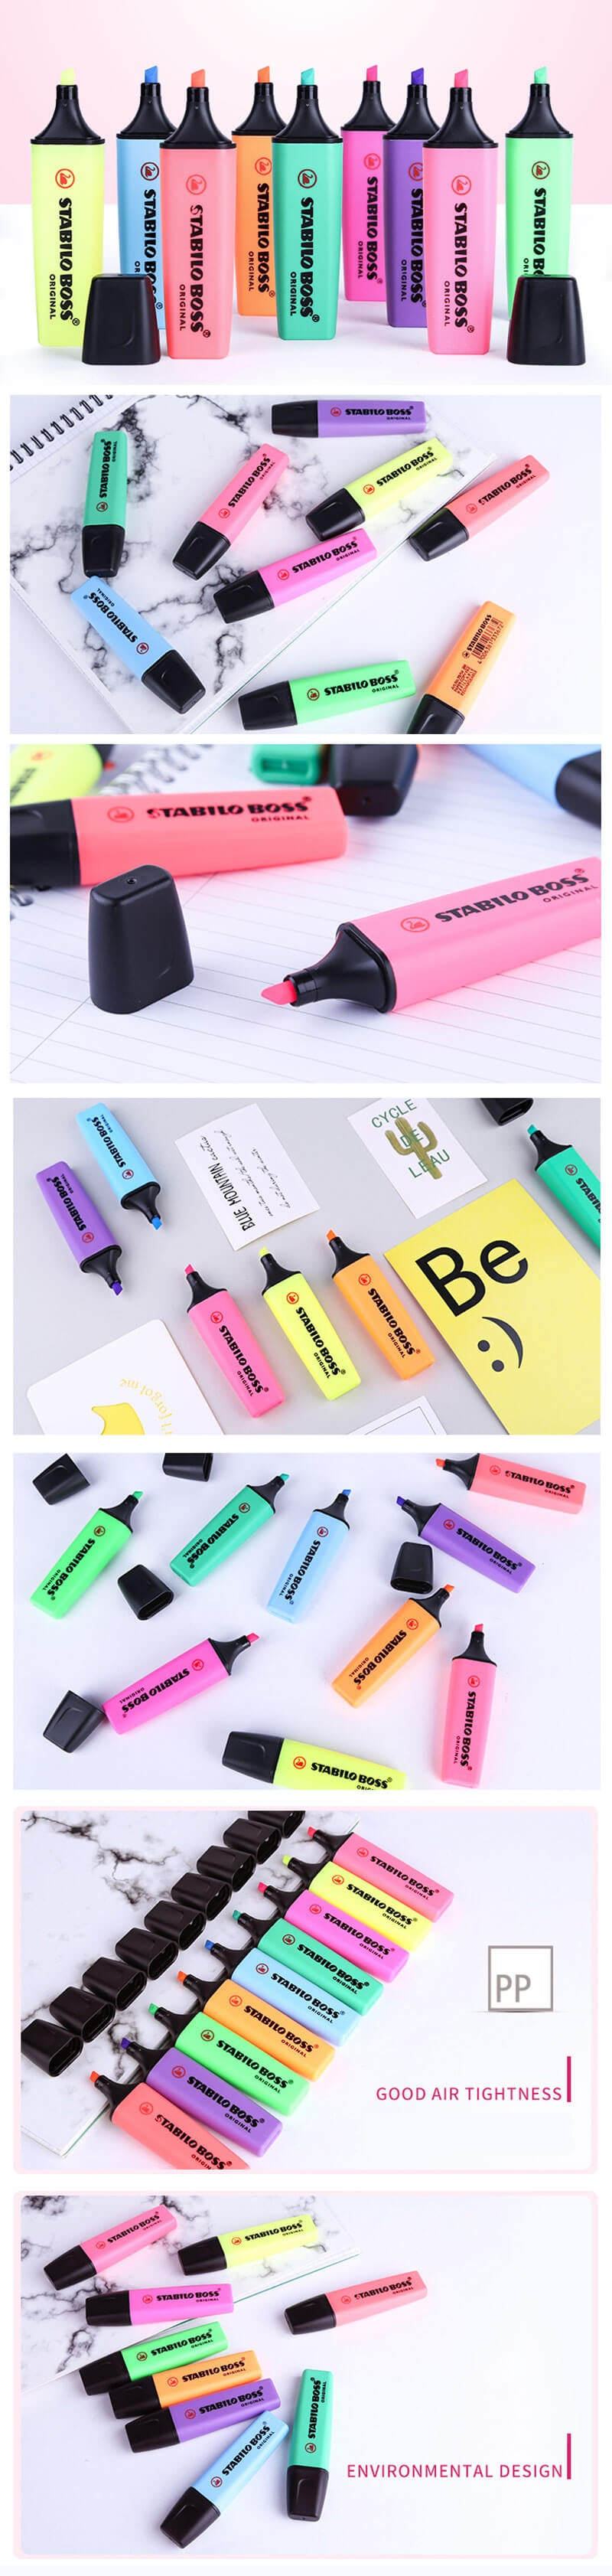 STABILO Boss Original Highlighters 9 Colors Pack - Detail